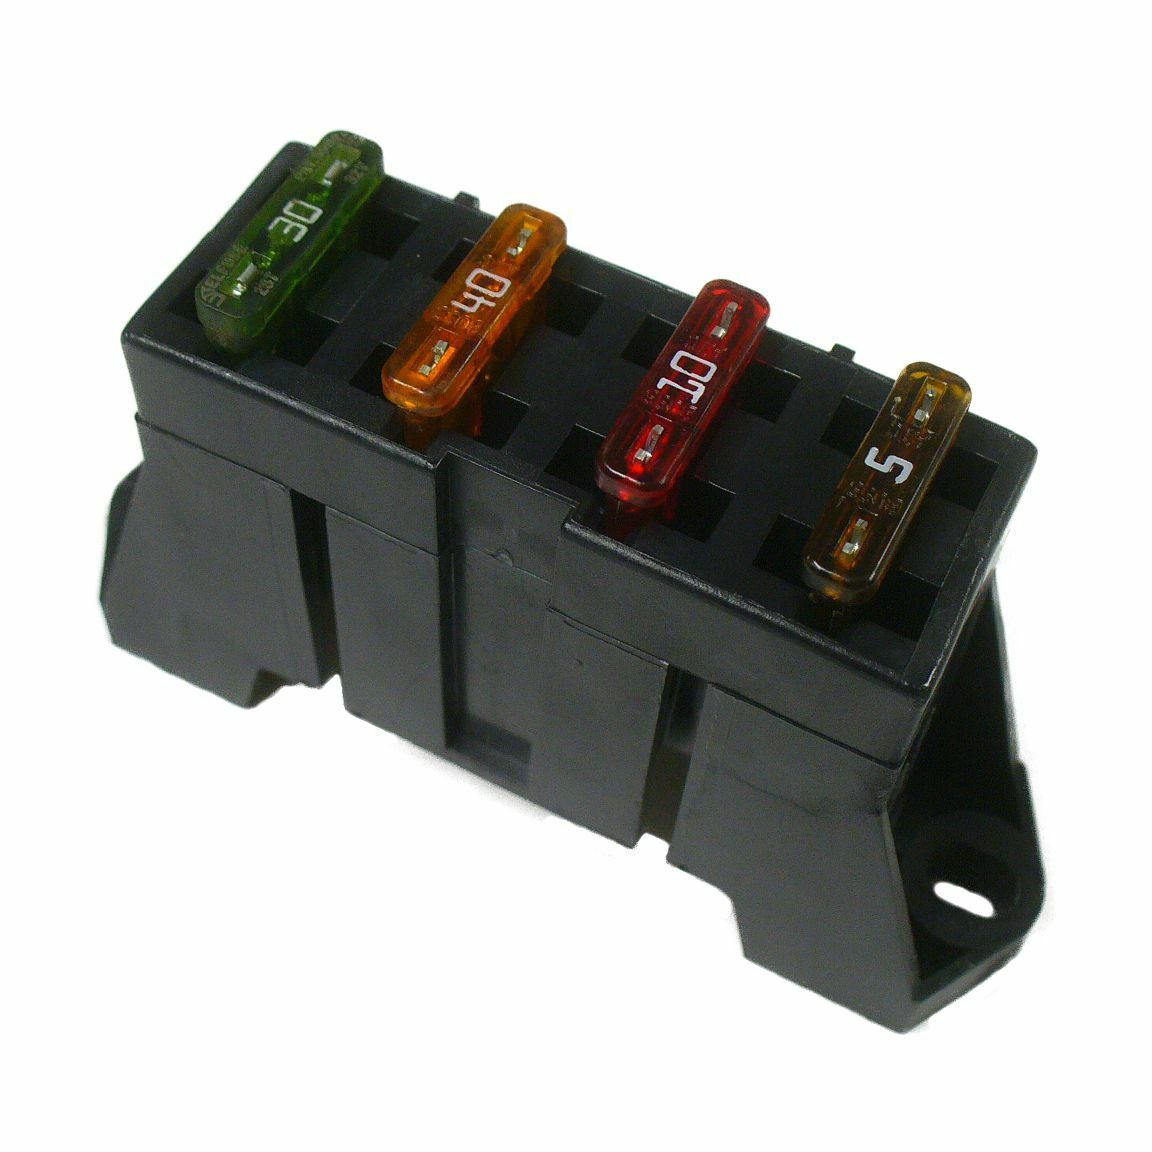 Delphi Ato Atc 4 Way Fuse Block Panel Holder With Terminals And Marine Grade Box 1 Of 3only 3 Available